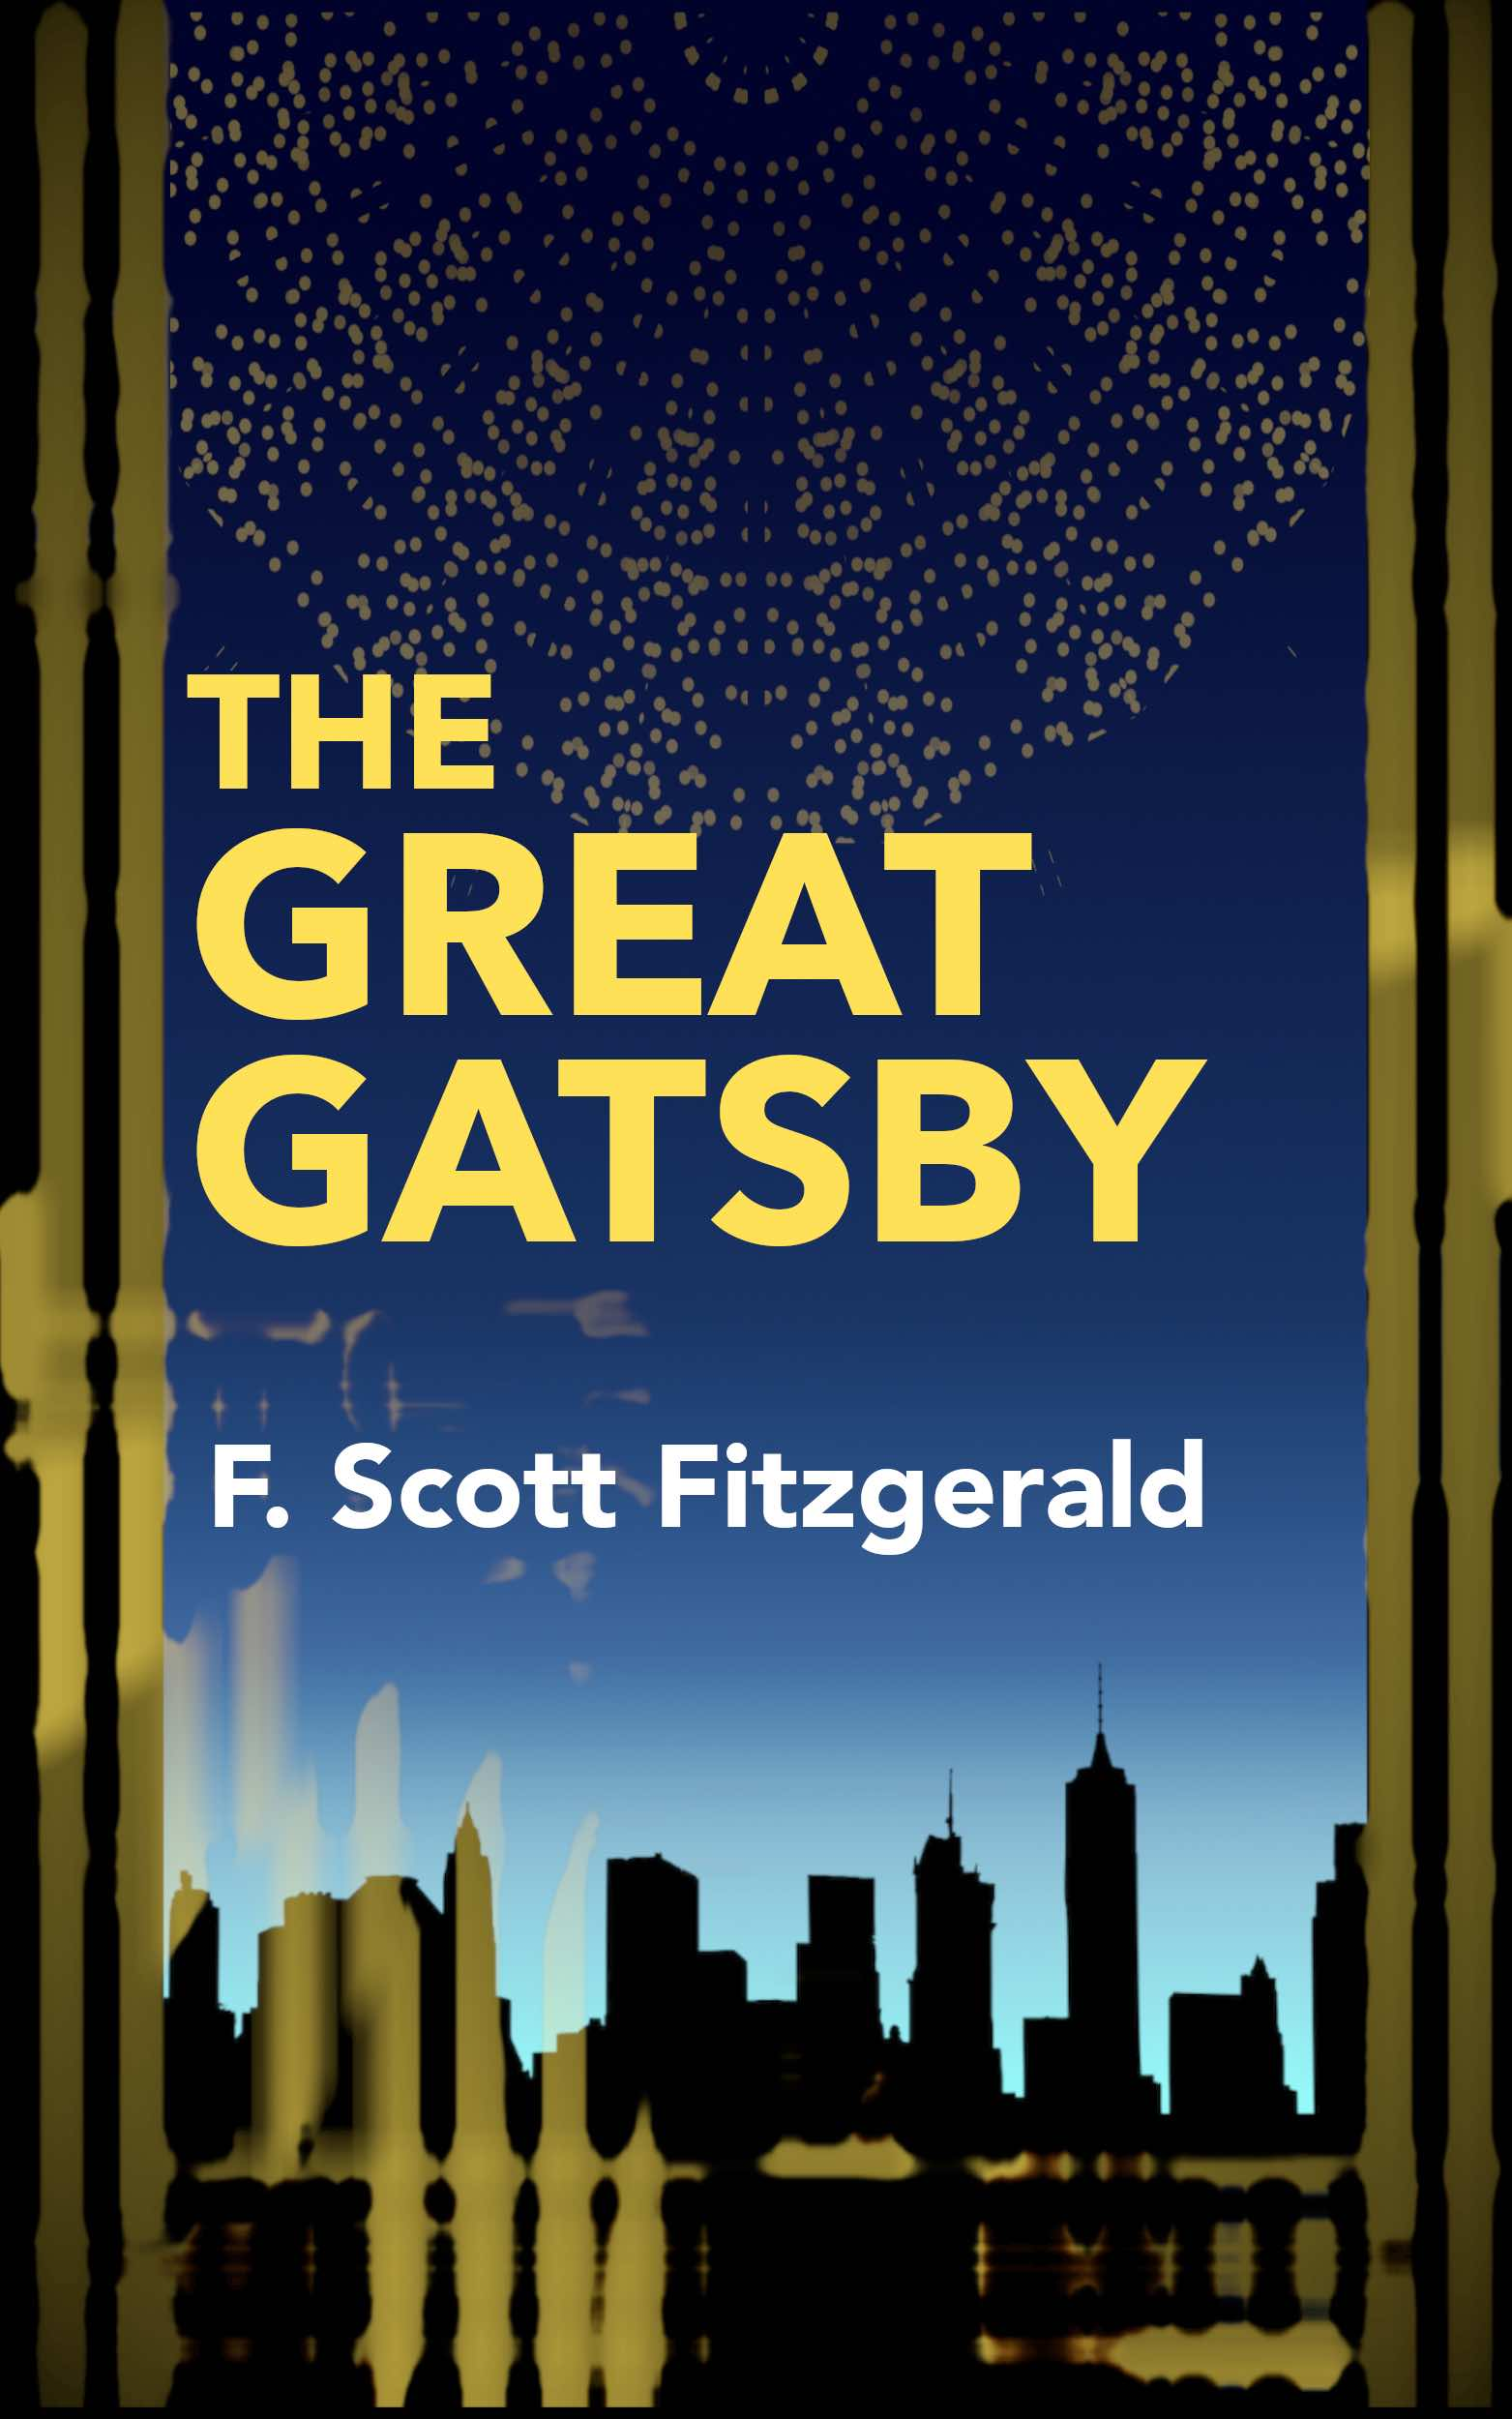 The Great Gatsby cover